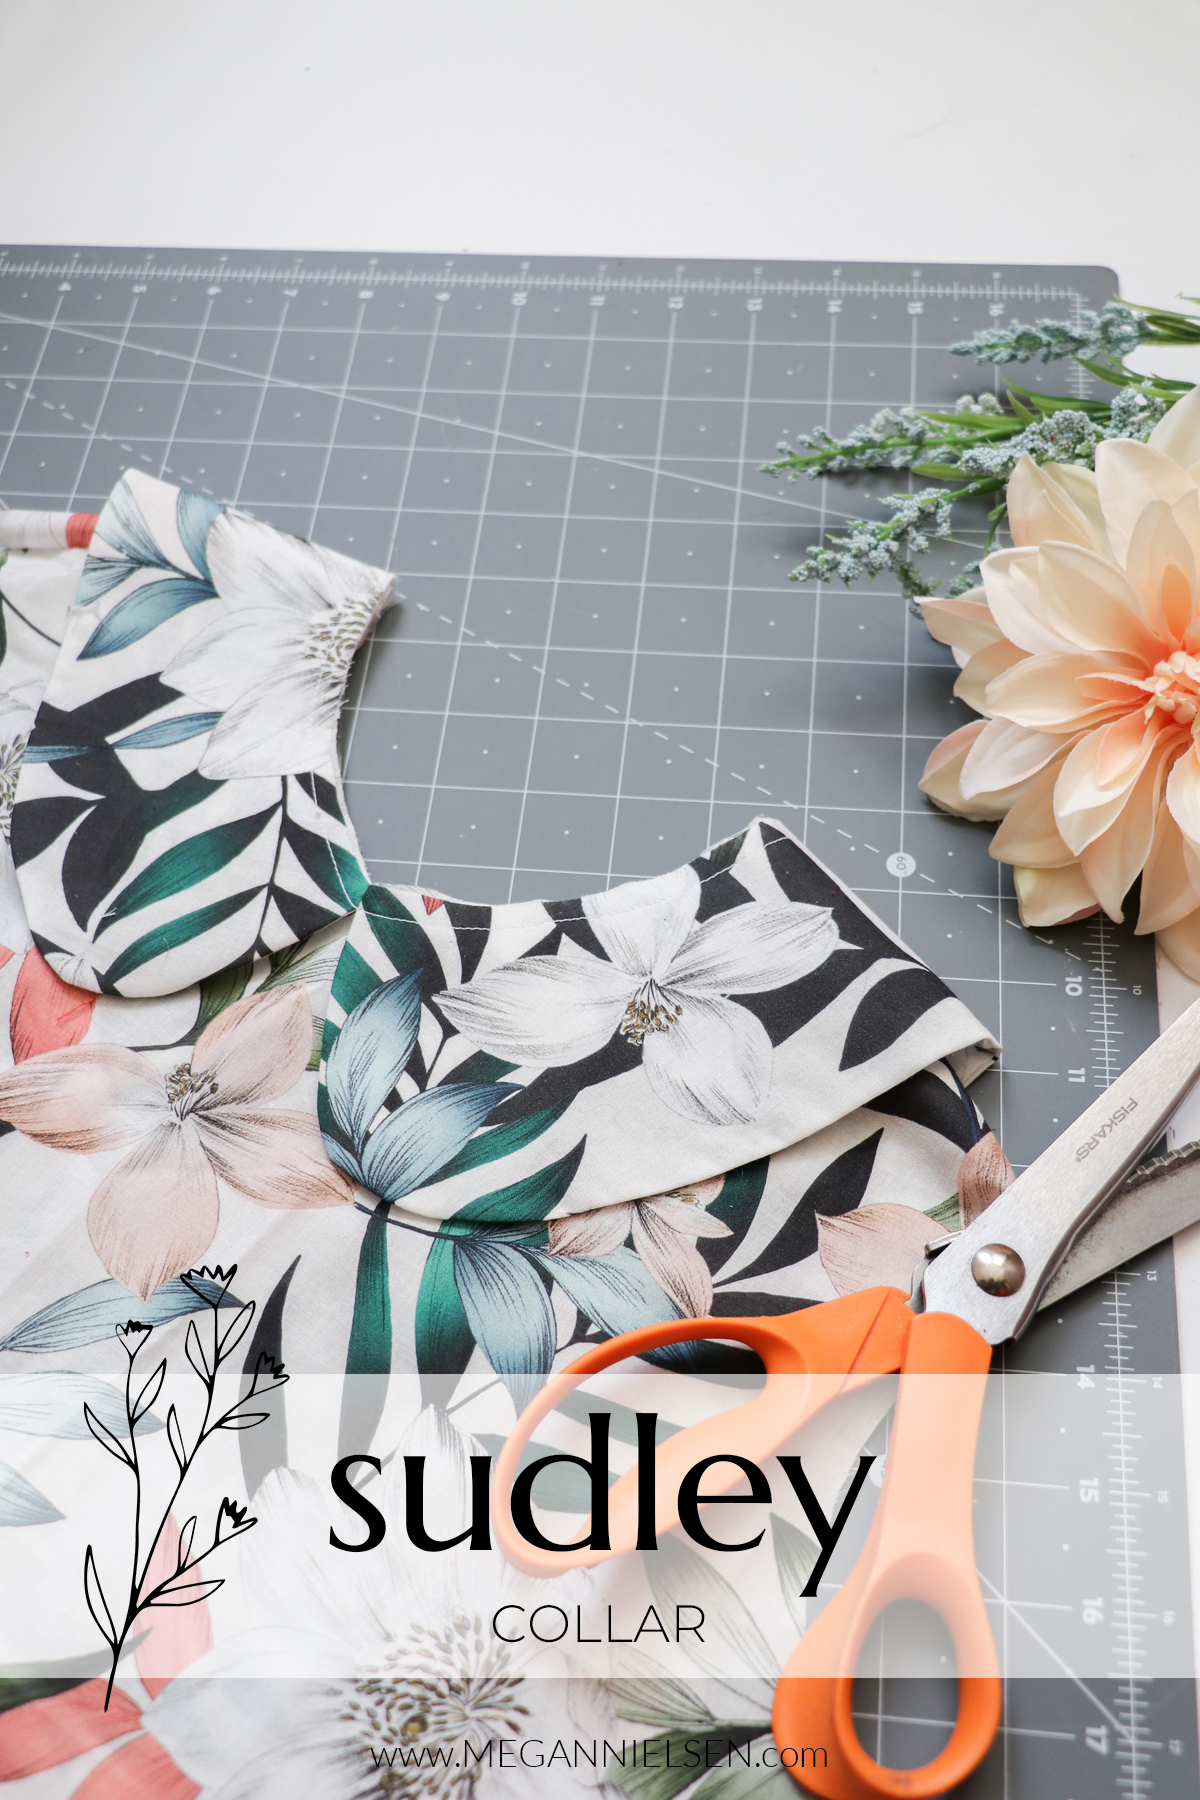 Sudley sewalong attaching the collar to the Sudley top and dress pattern